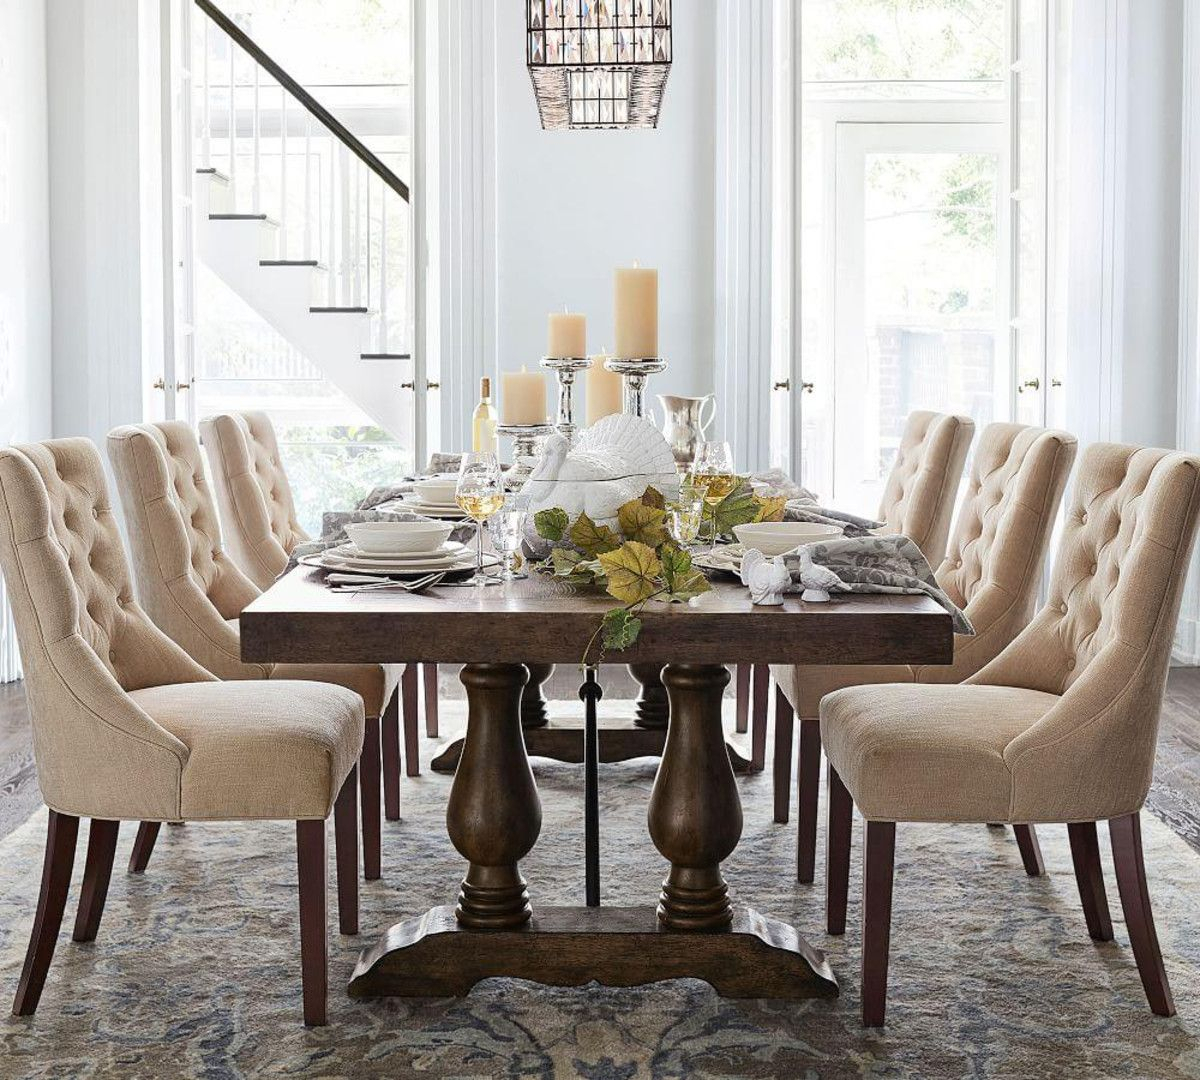 Lorraine Extending Dining Table In 2019 | Woodworks Within Most Current Hewn Oak Lorraine Extending Dining Tables (View 4 of 25)